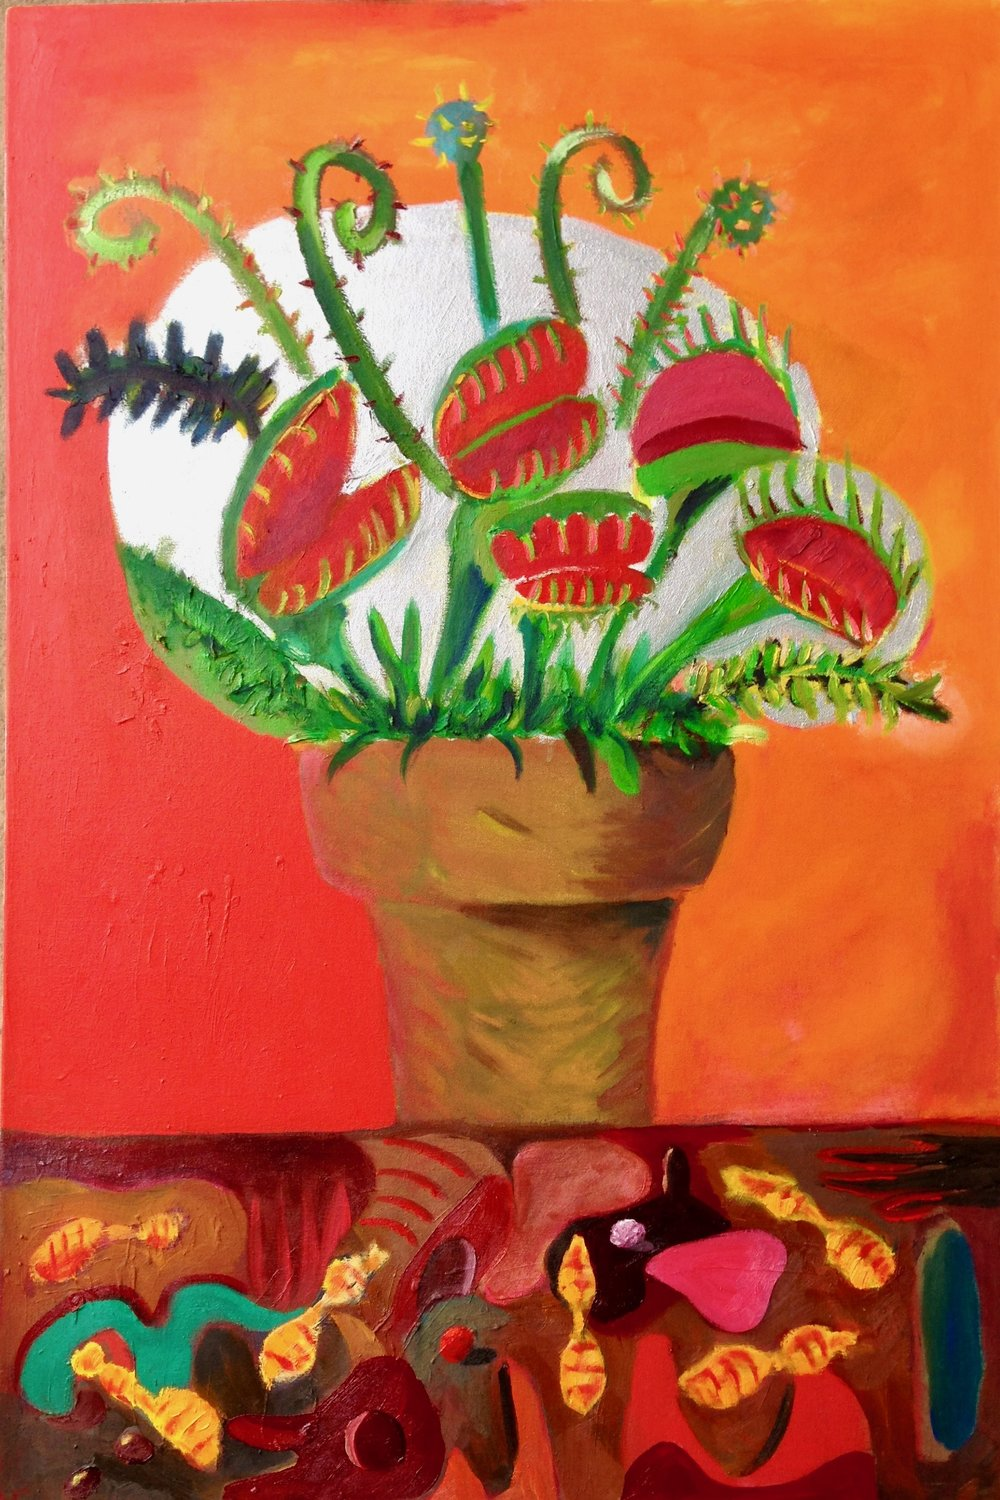 """Venus flytraps and the subterranean life"" 36""x24"" Oil on canvas  $500"